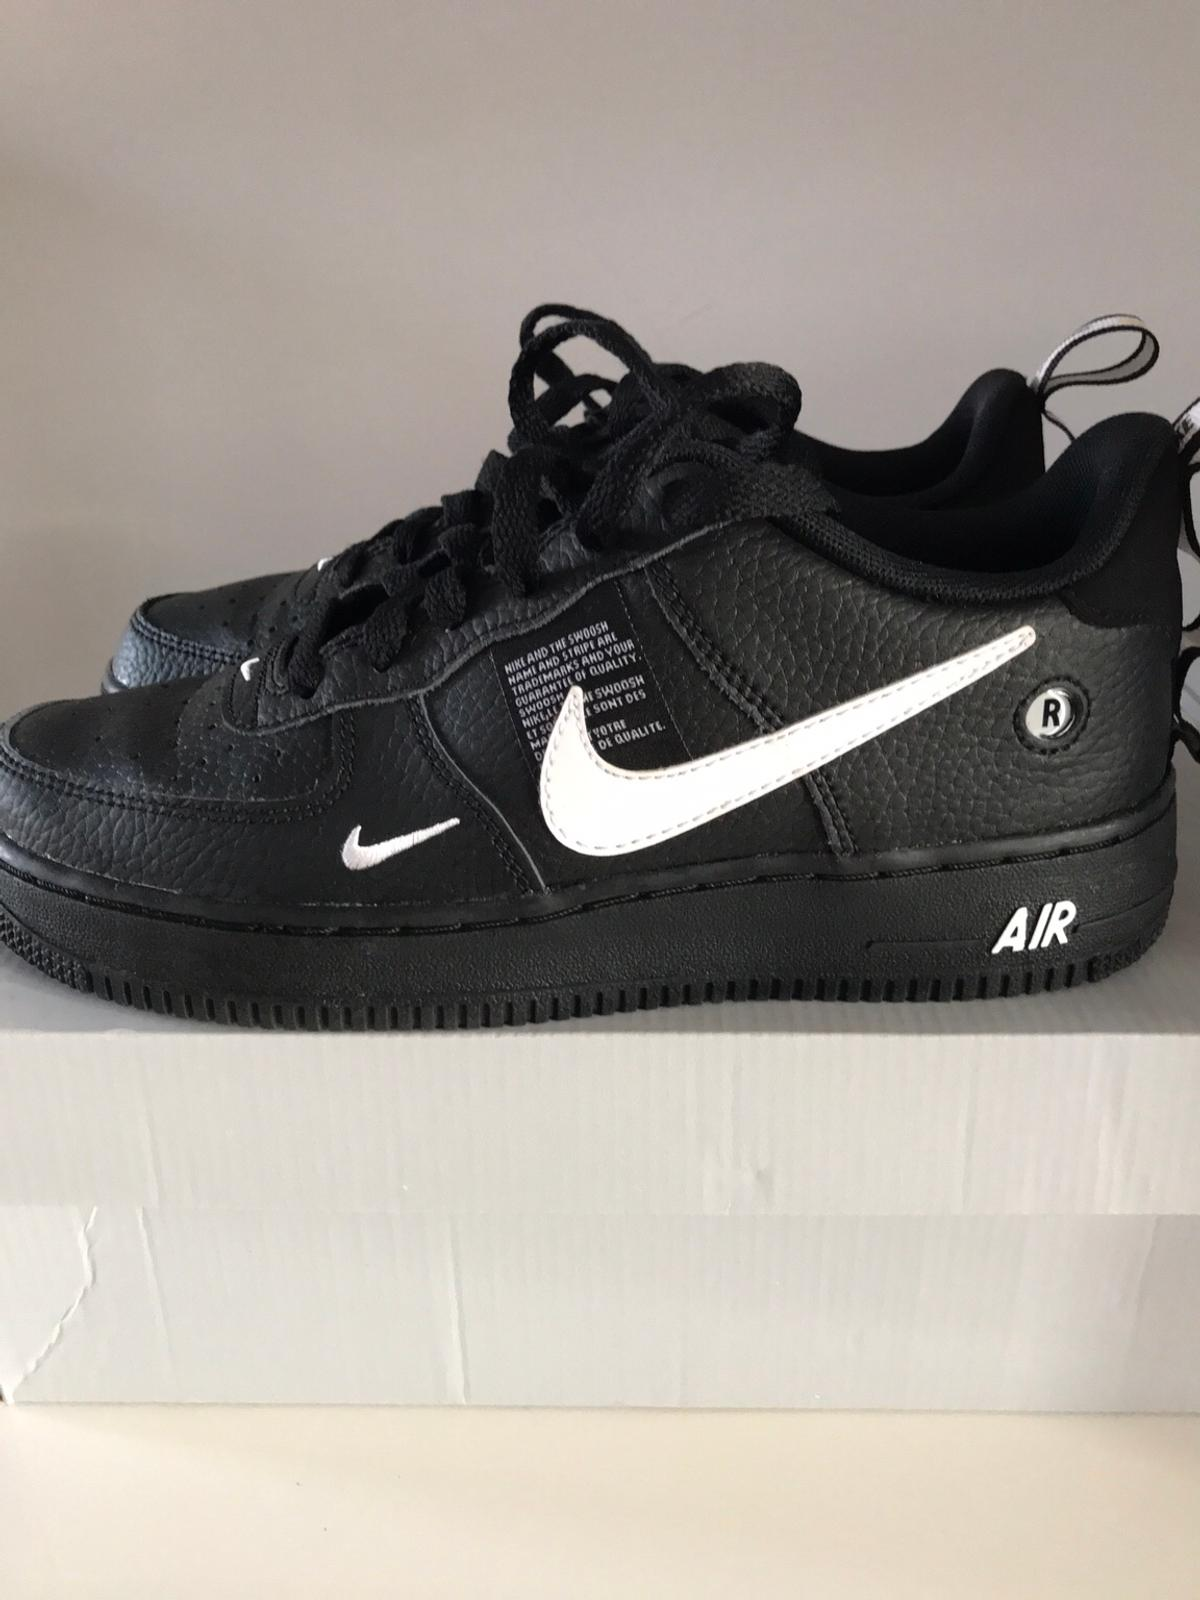 Force Nike Air Size Brook For Utility End 5 5 Shenley 00 1lv8 In £50 BWCoedrx